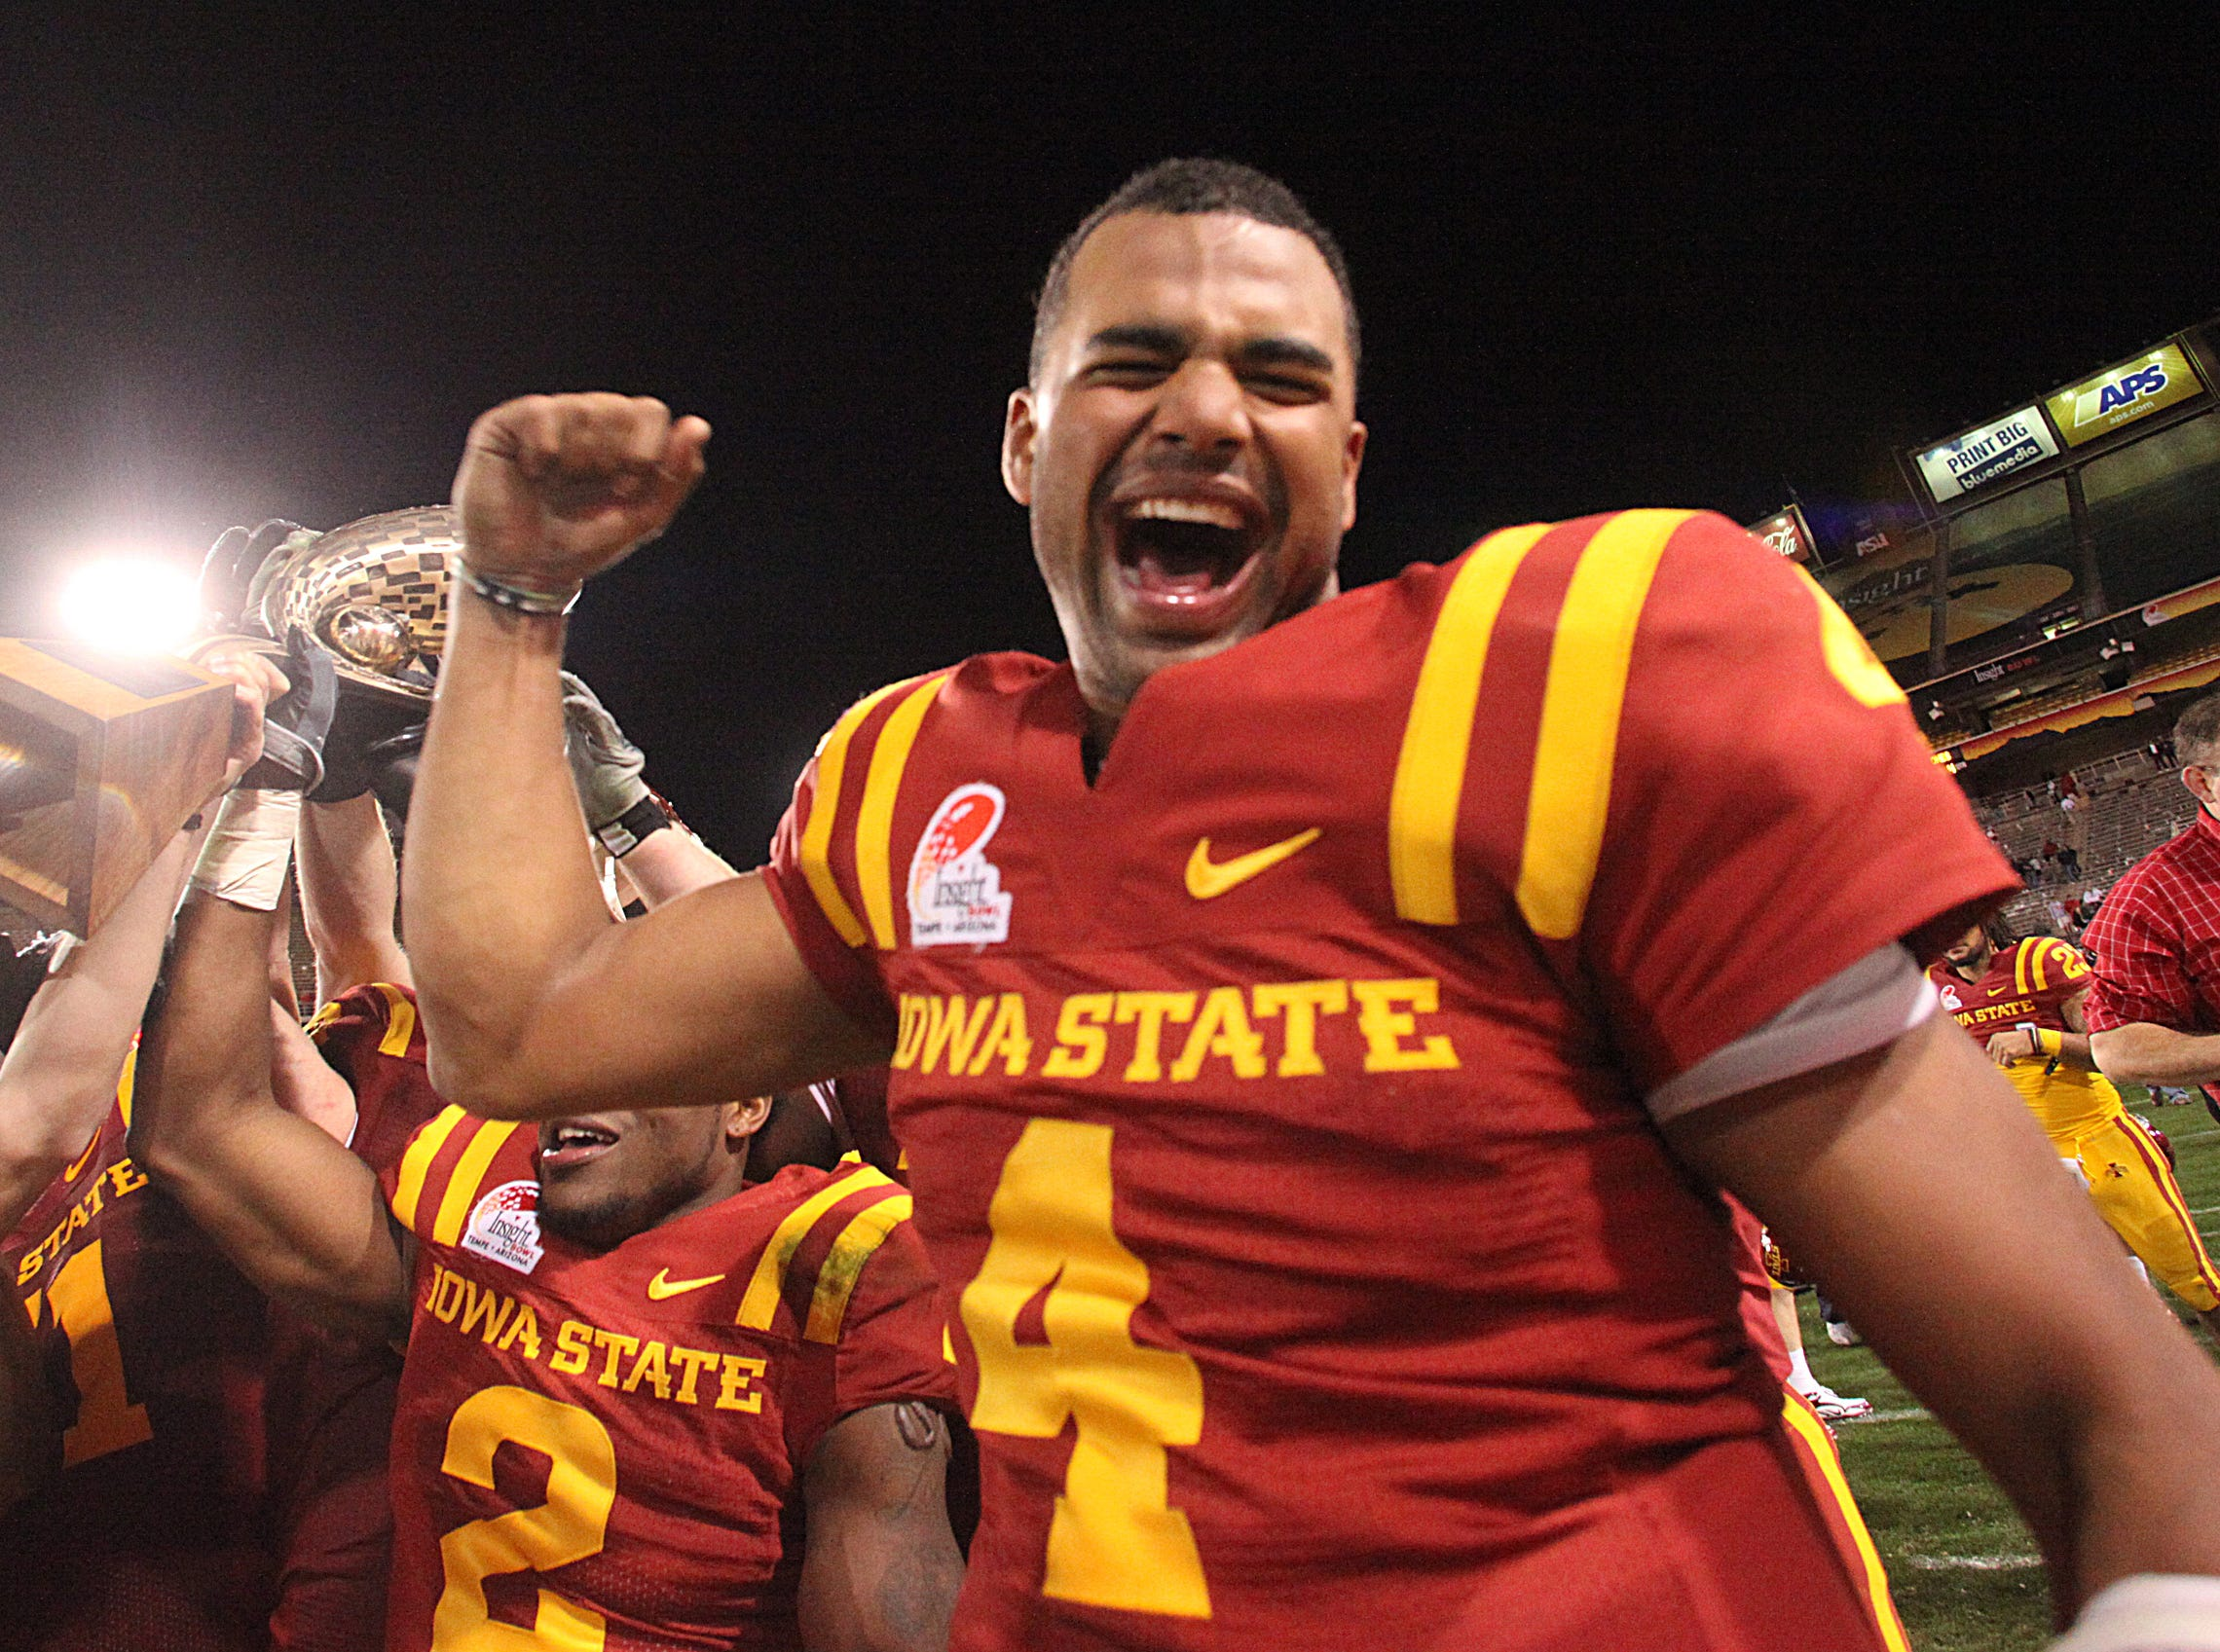 Austen Arnaud and the rest of the ISU team celebrate their win with the trophey. Iowa State won 14-13. S0101ISUBowl -Iowa State University played Minnesota in the Insight Bowl in Tempe, Arizona, Thursday, December 31, 2009 at Sun Devil Stadium. (Andrea Melendez/The Register)